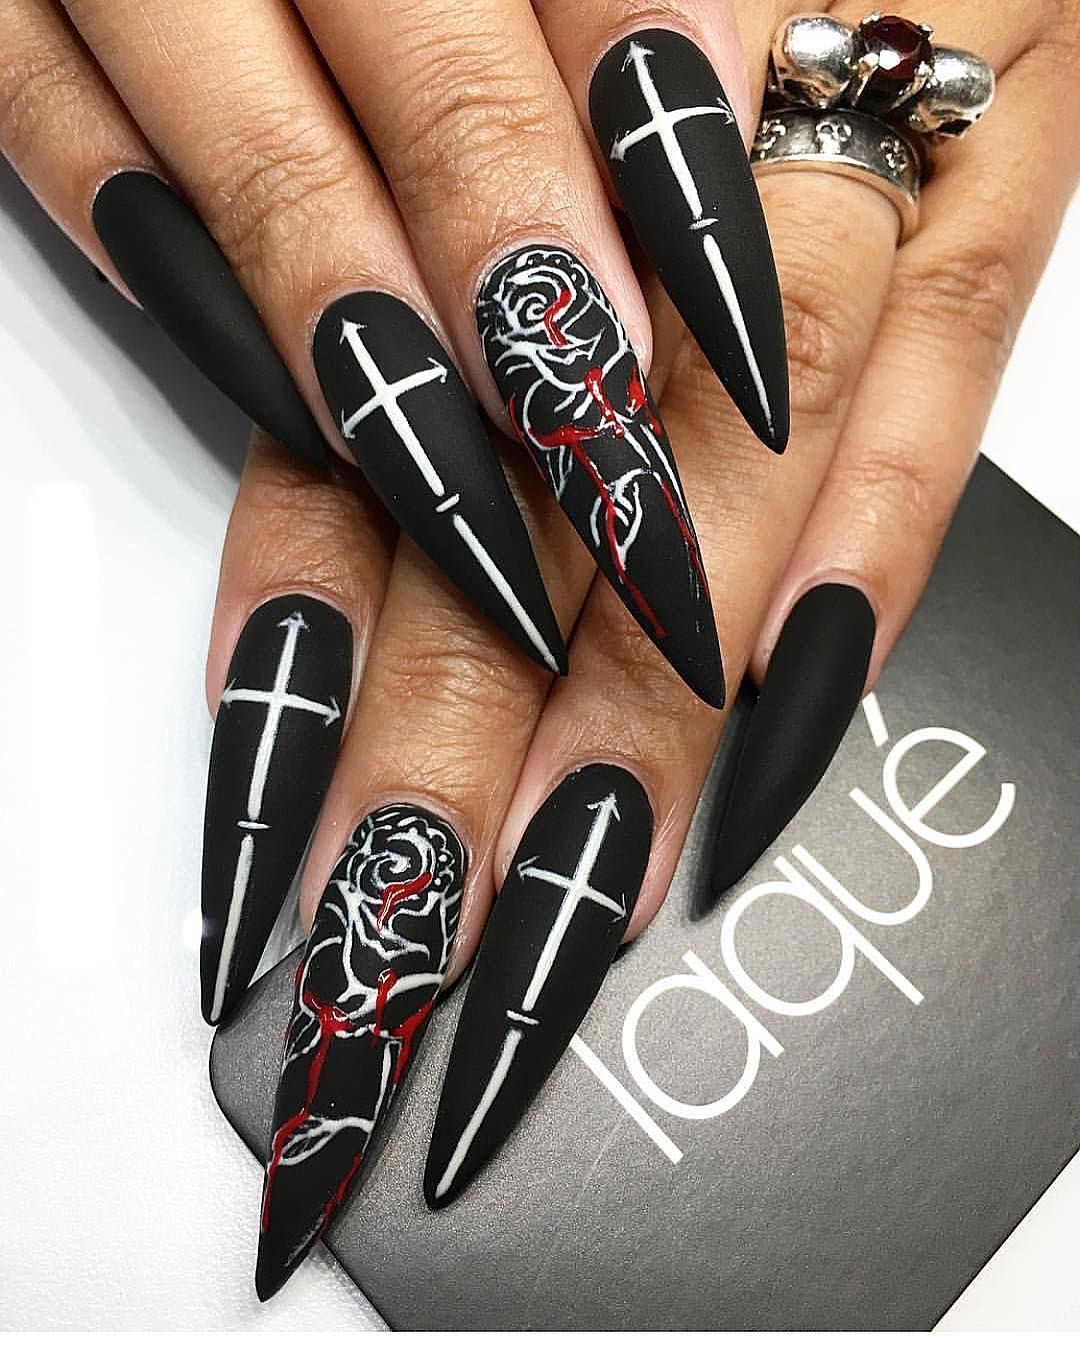 Pin by Cierra Lopez💀 on Acrylic nails | Pinterest | Gothic nails ...